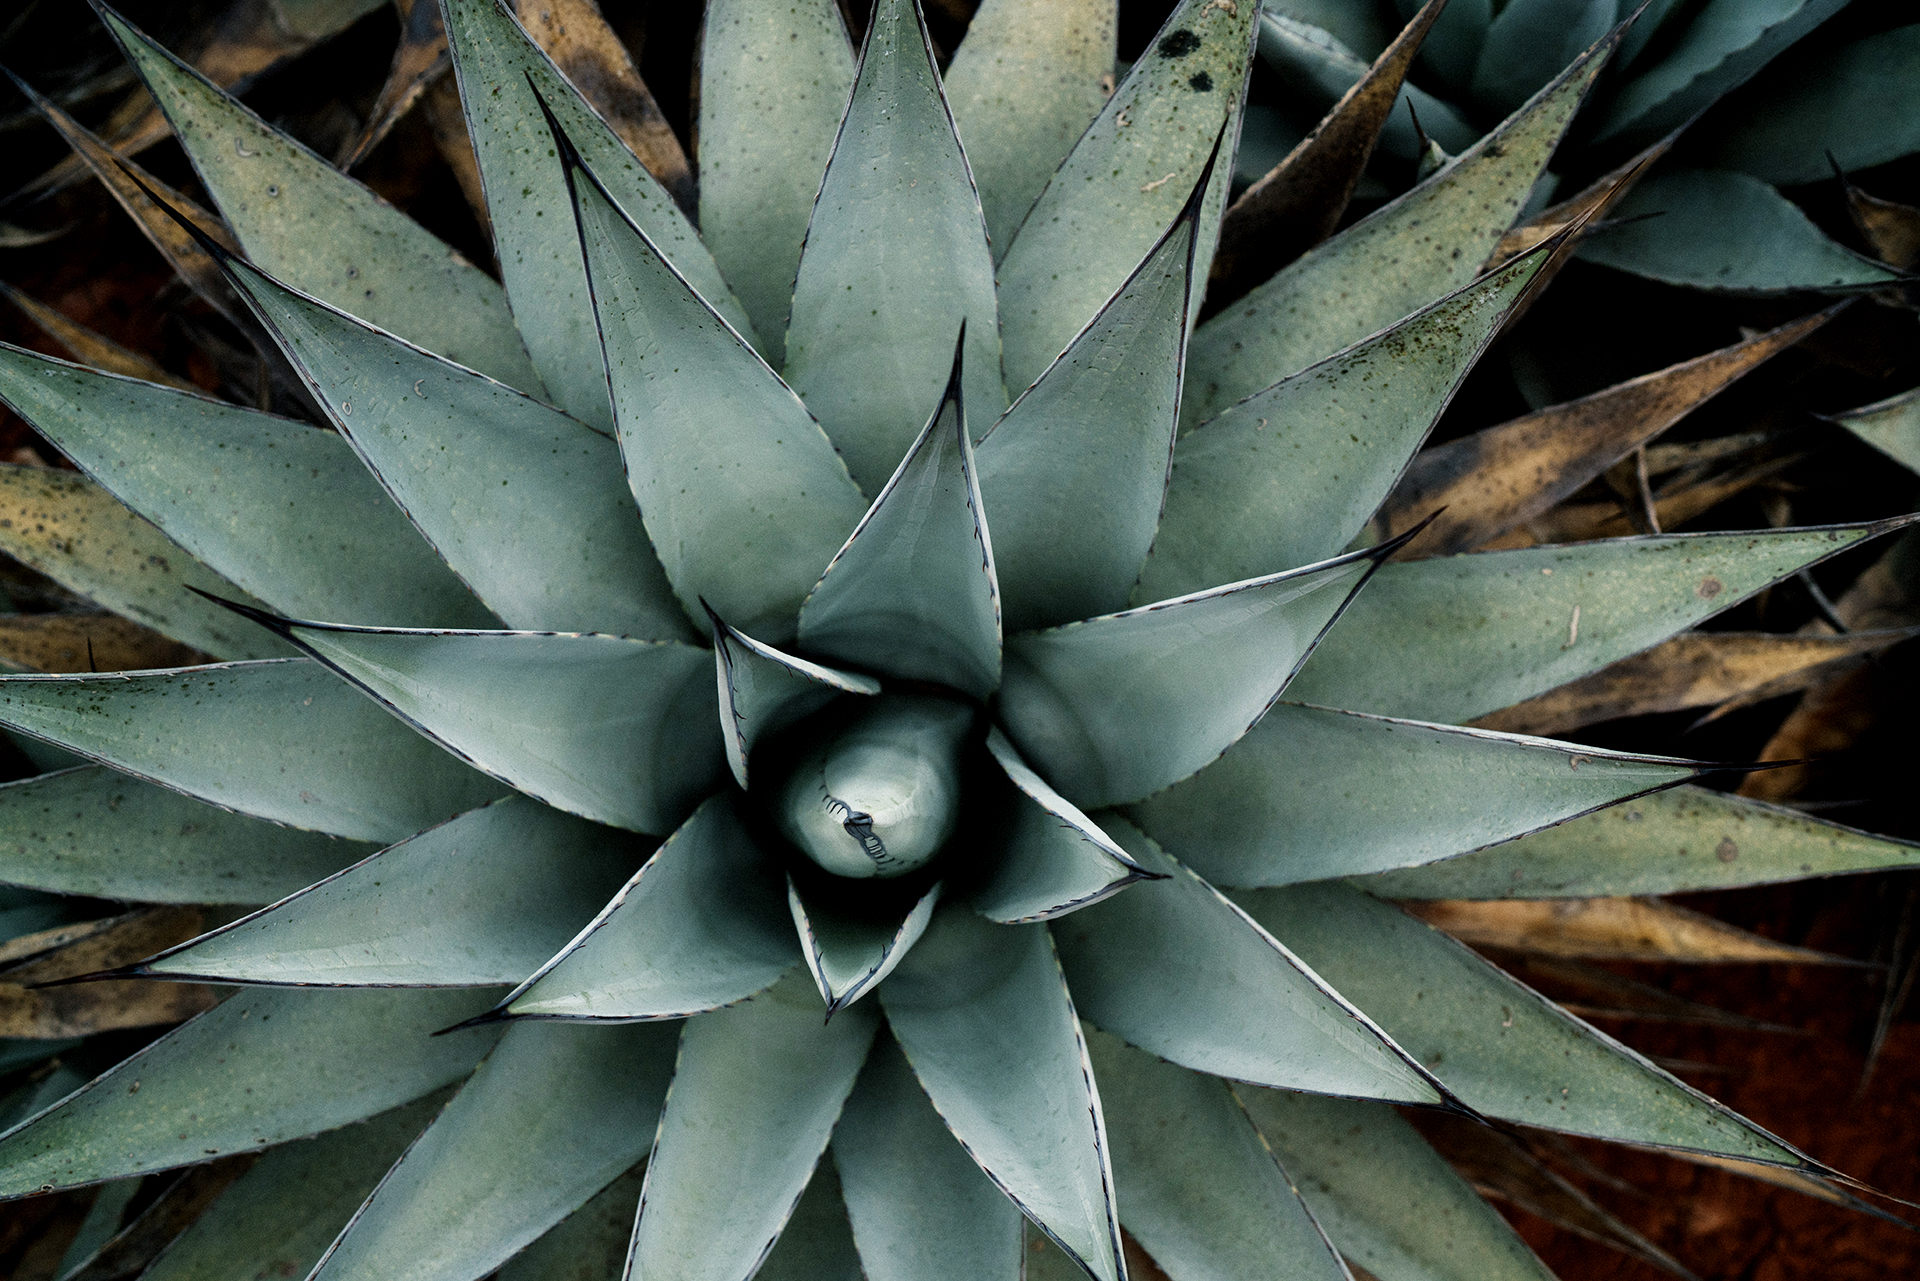 Top down view of blue agave